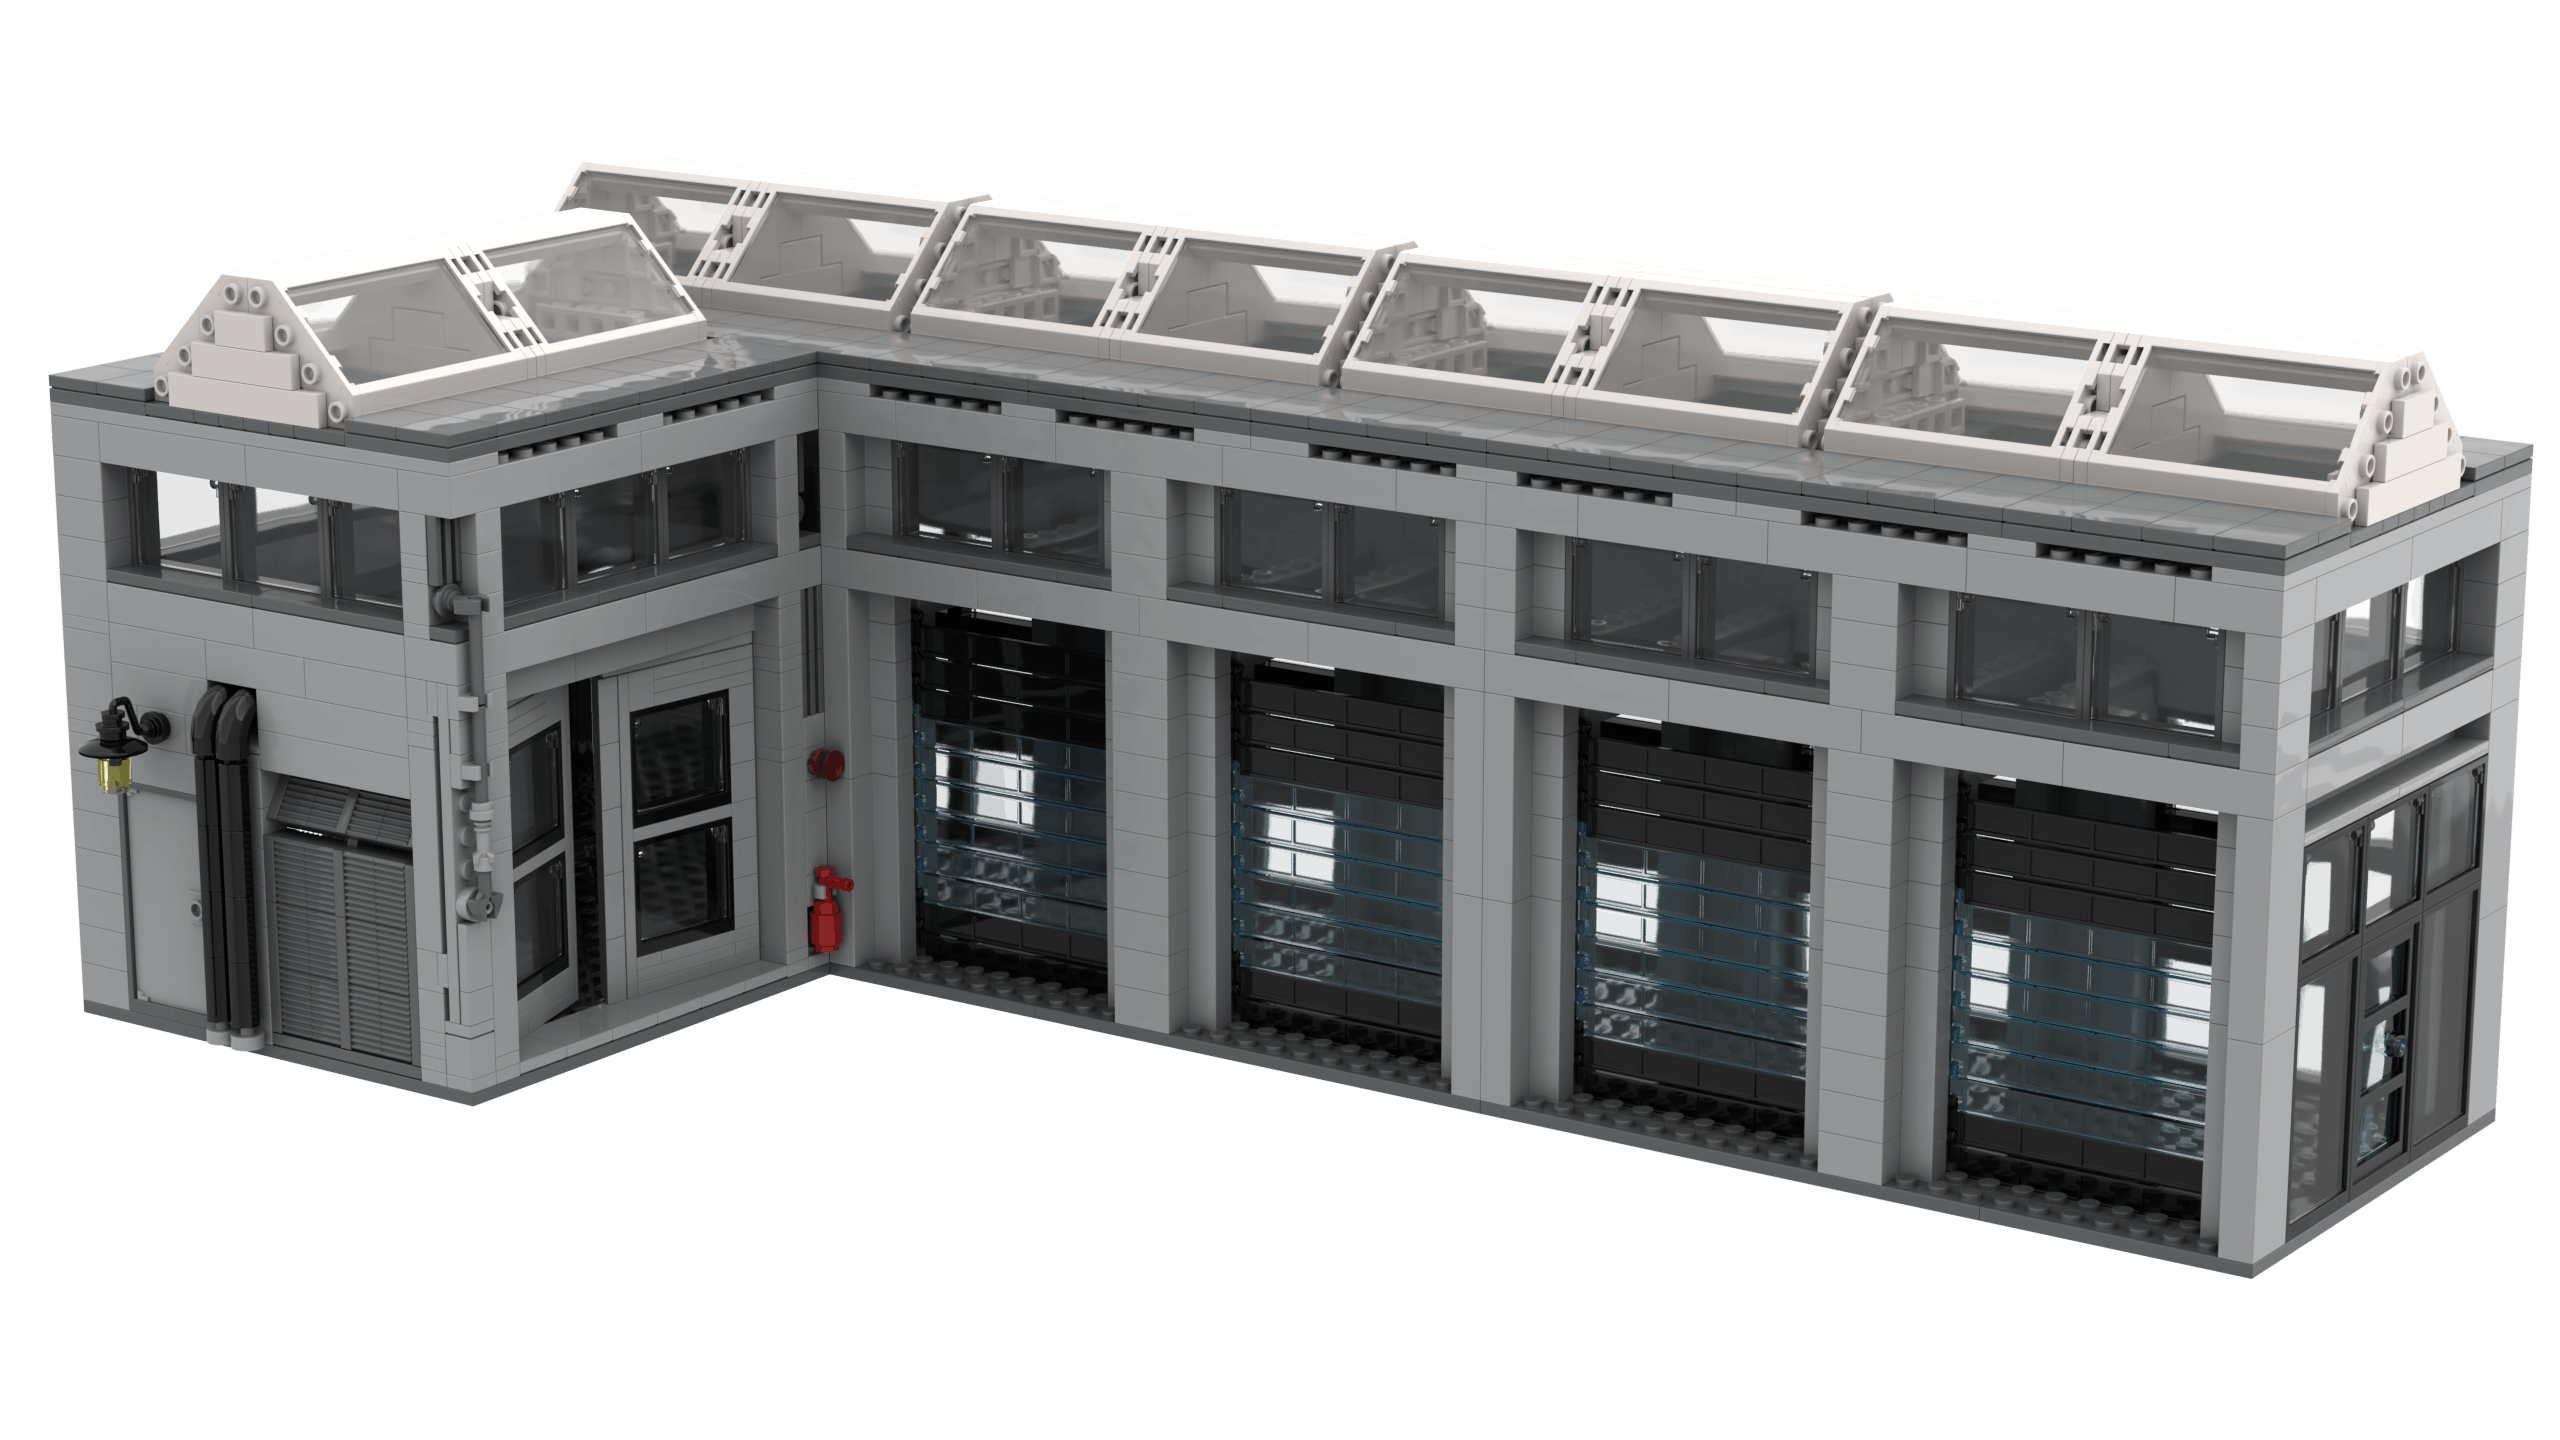 3D render of the Logistics Terminal MOC not final design. Rendered using Stud.io.